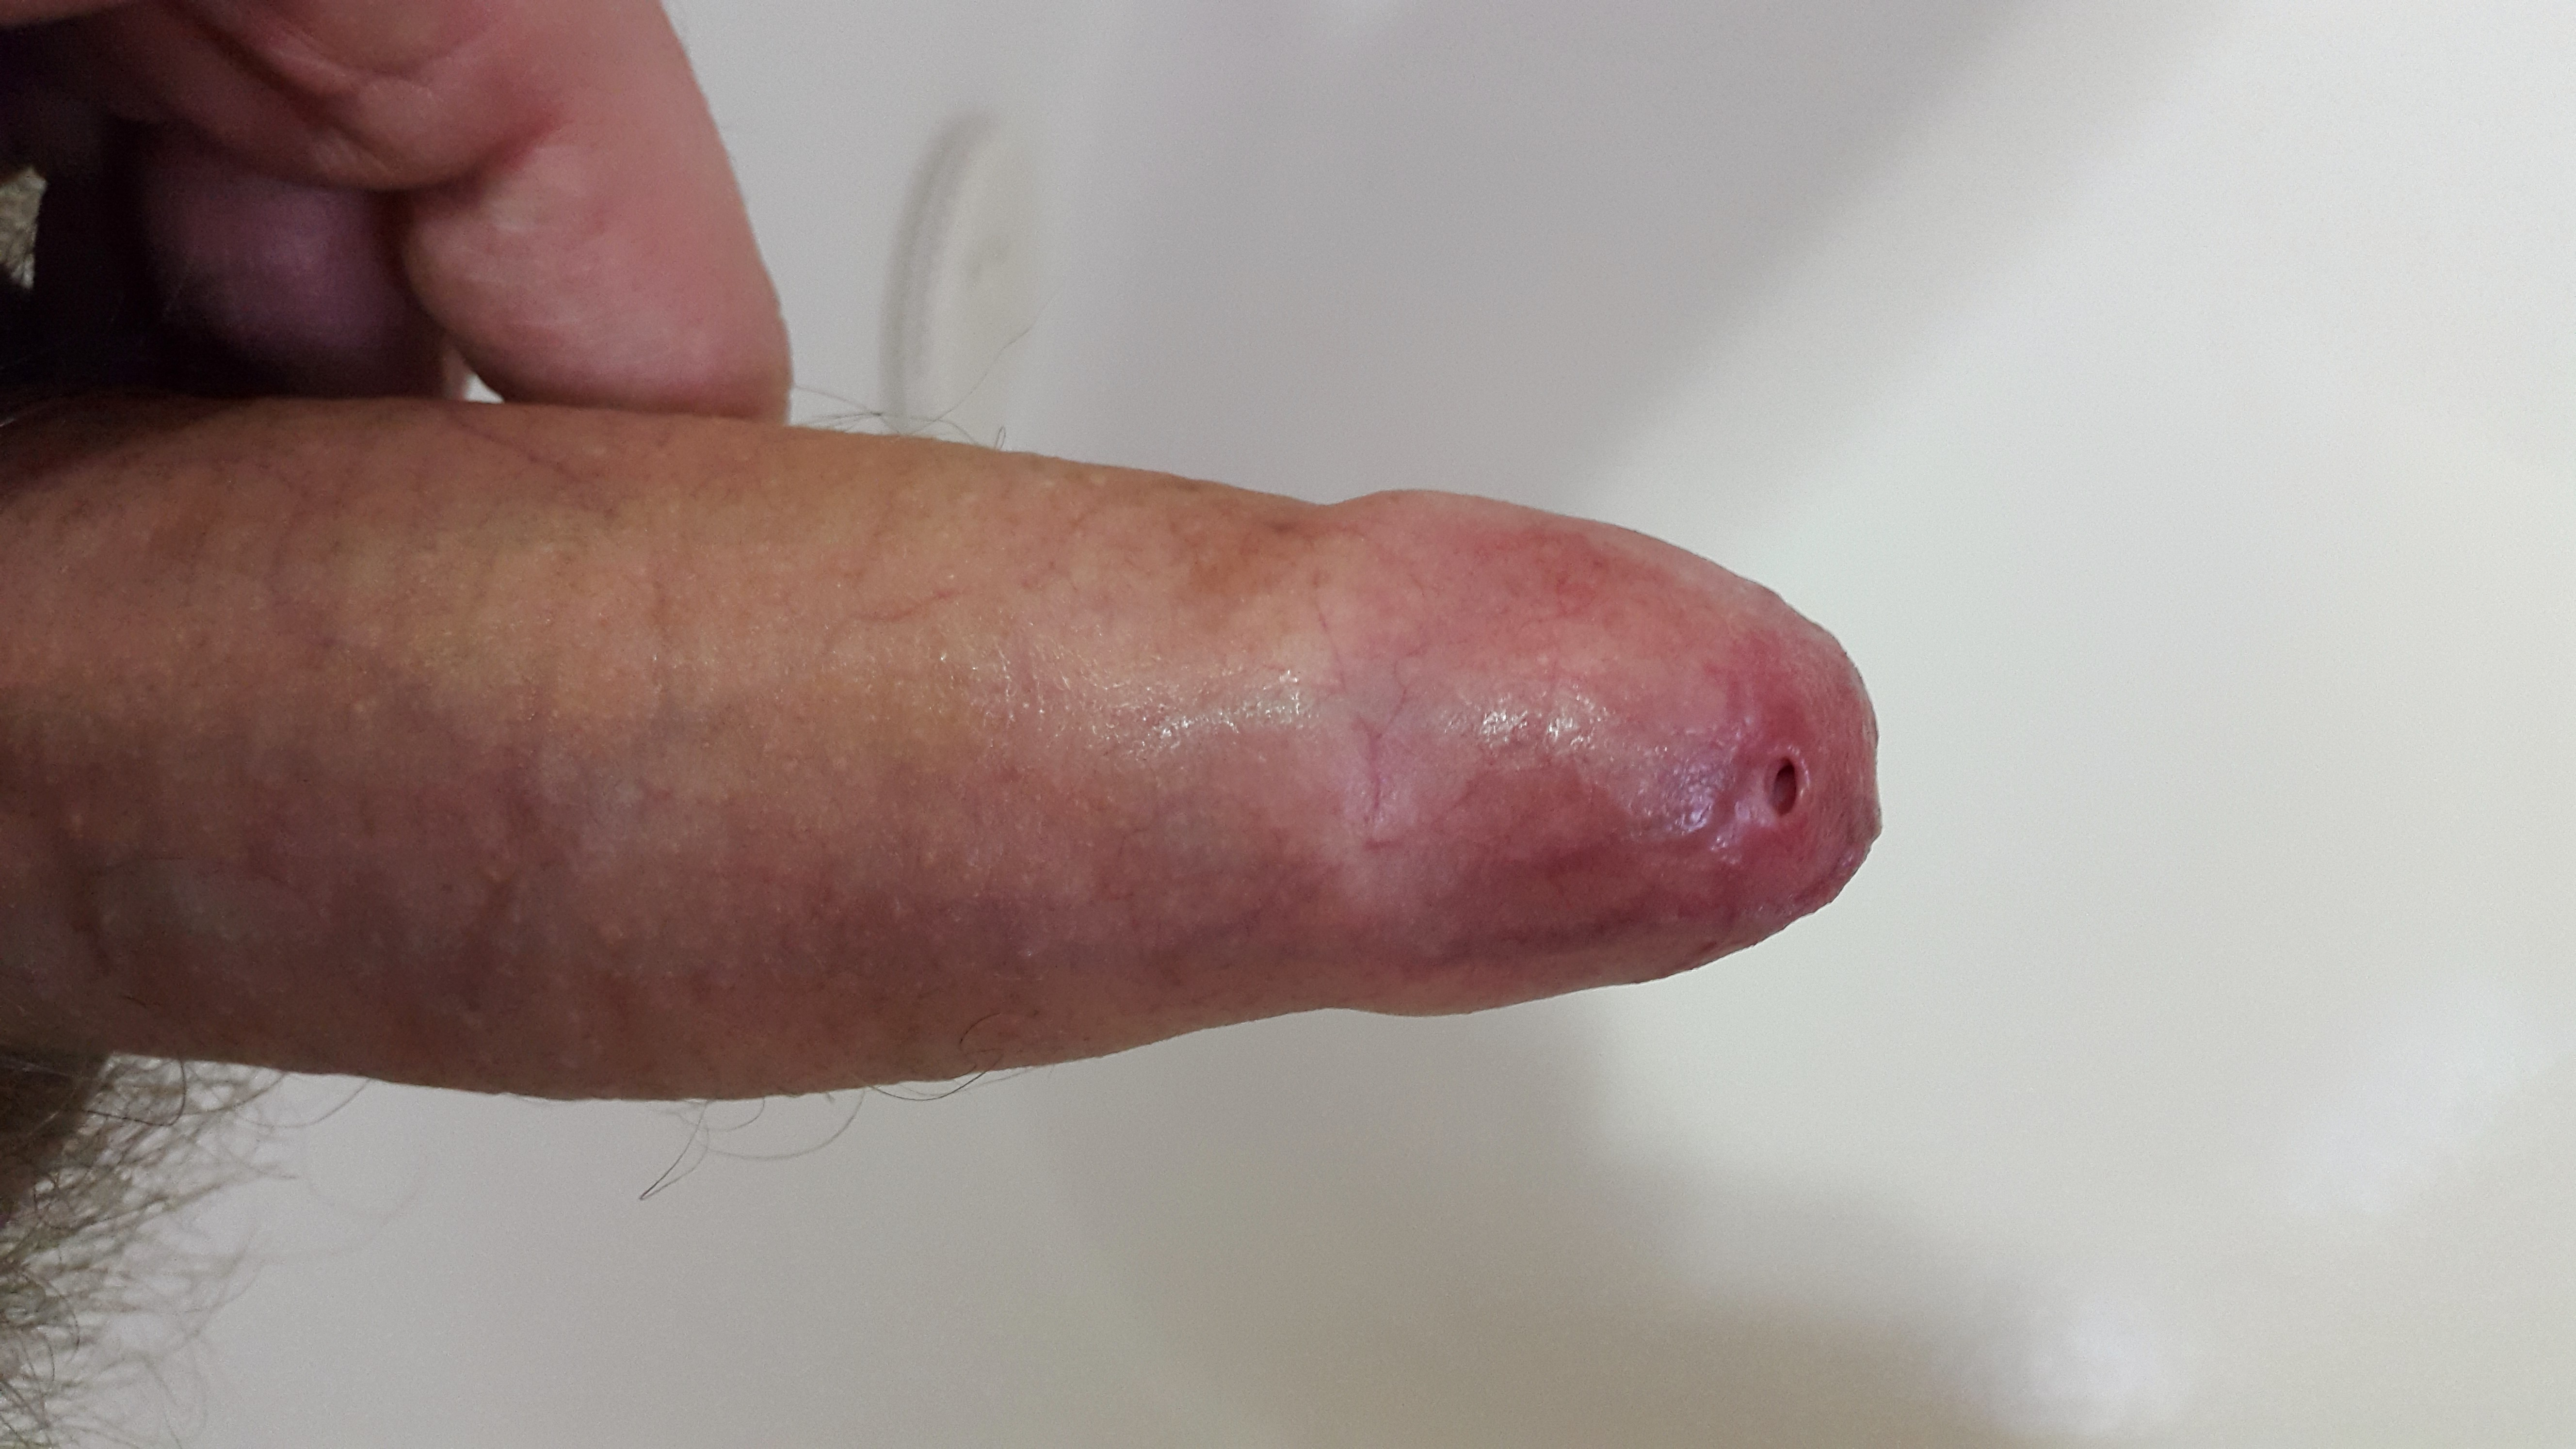 Erect penis with severe phimosis (tight foreskin)